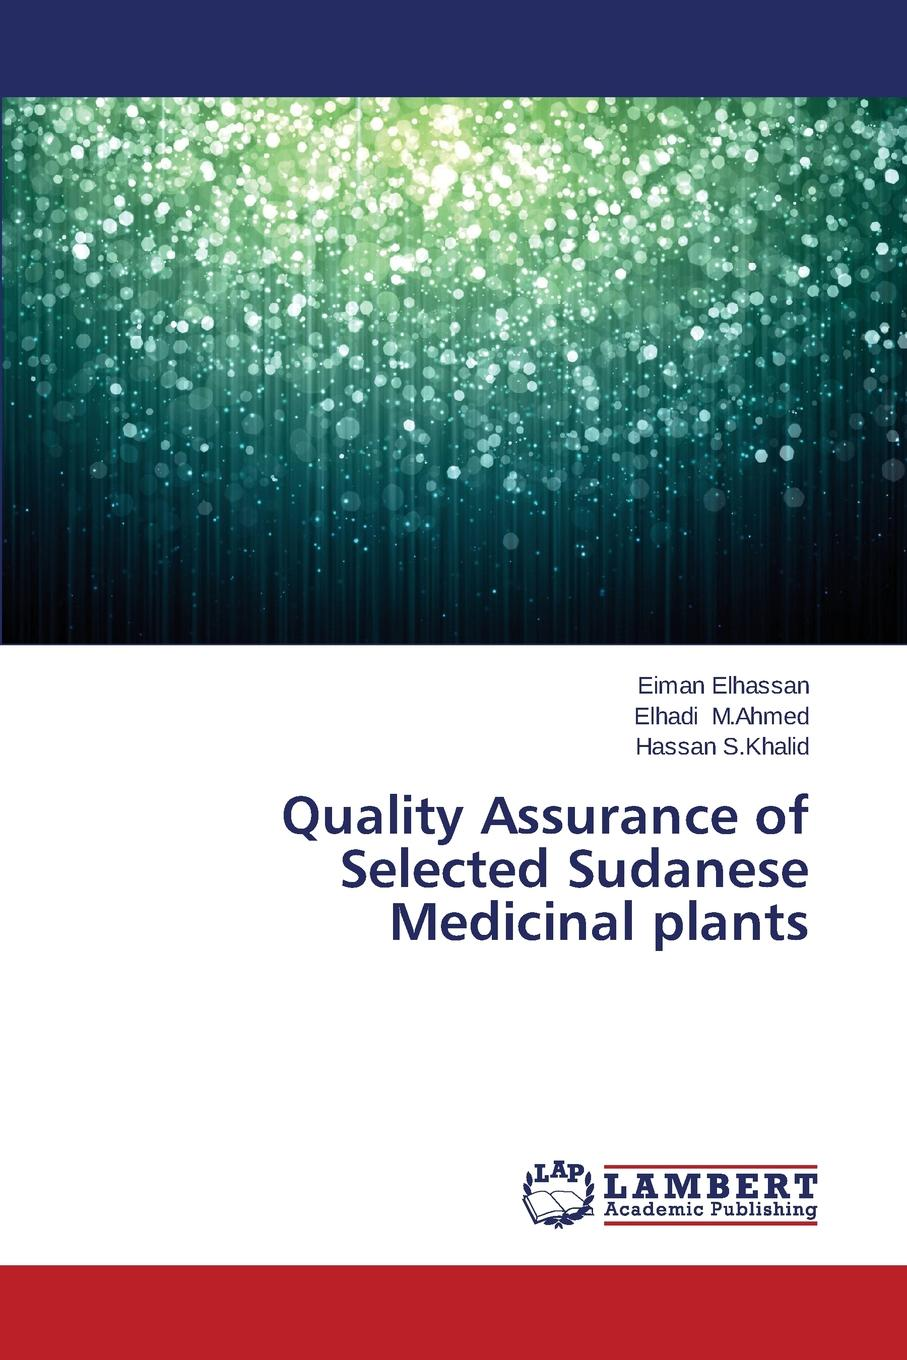 Elhassan Eiman, M. Ahmed Elhadi, S. Khalid Hassan Quality Assurance of Selected Sudanese Medicinal Plants цена